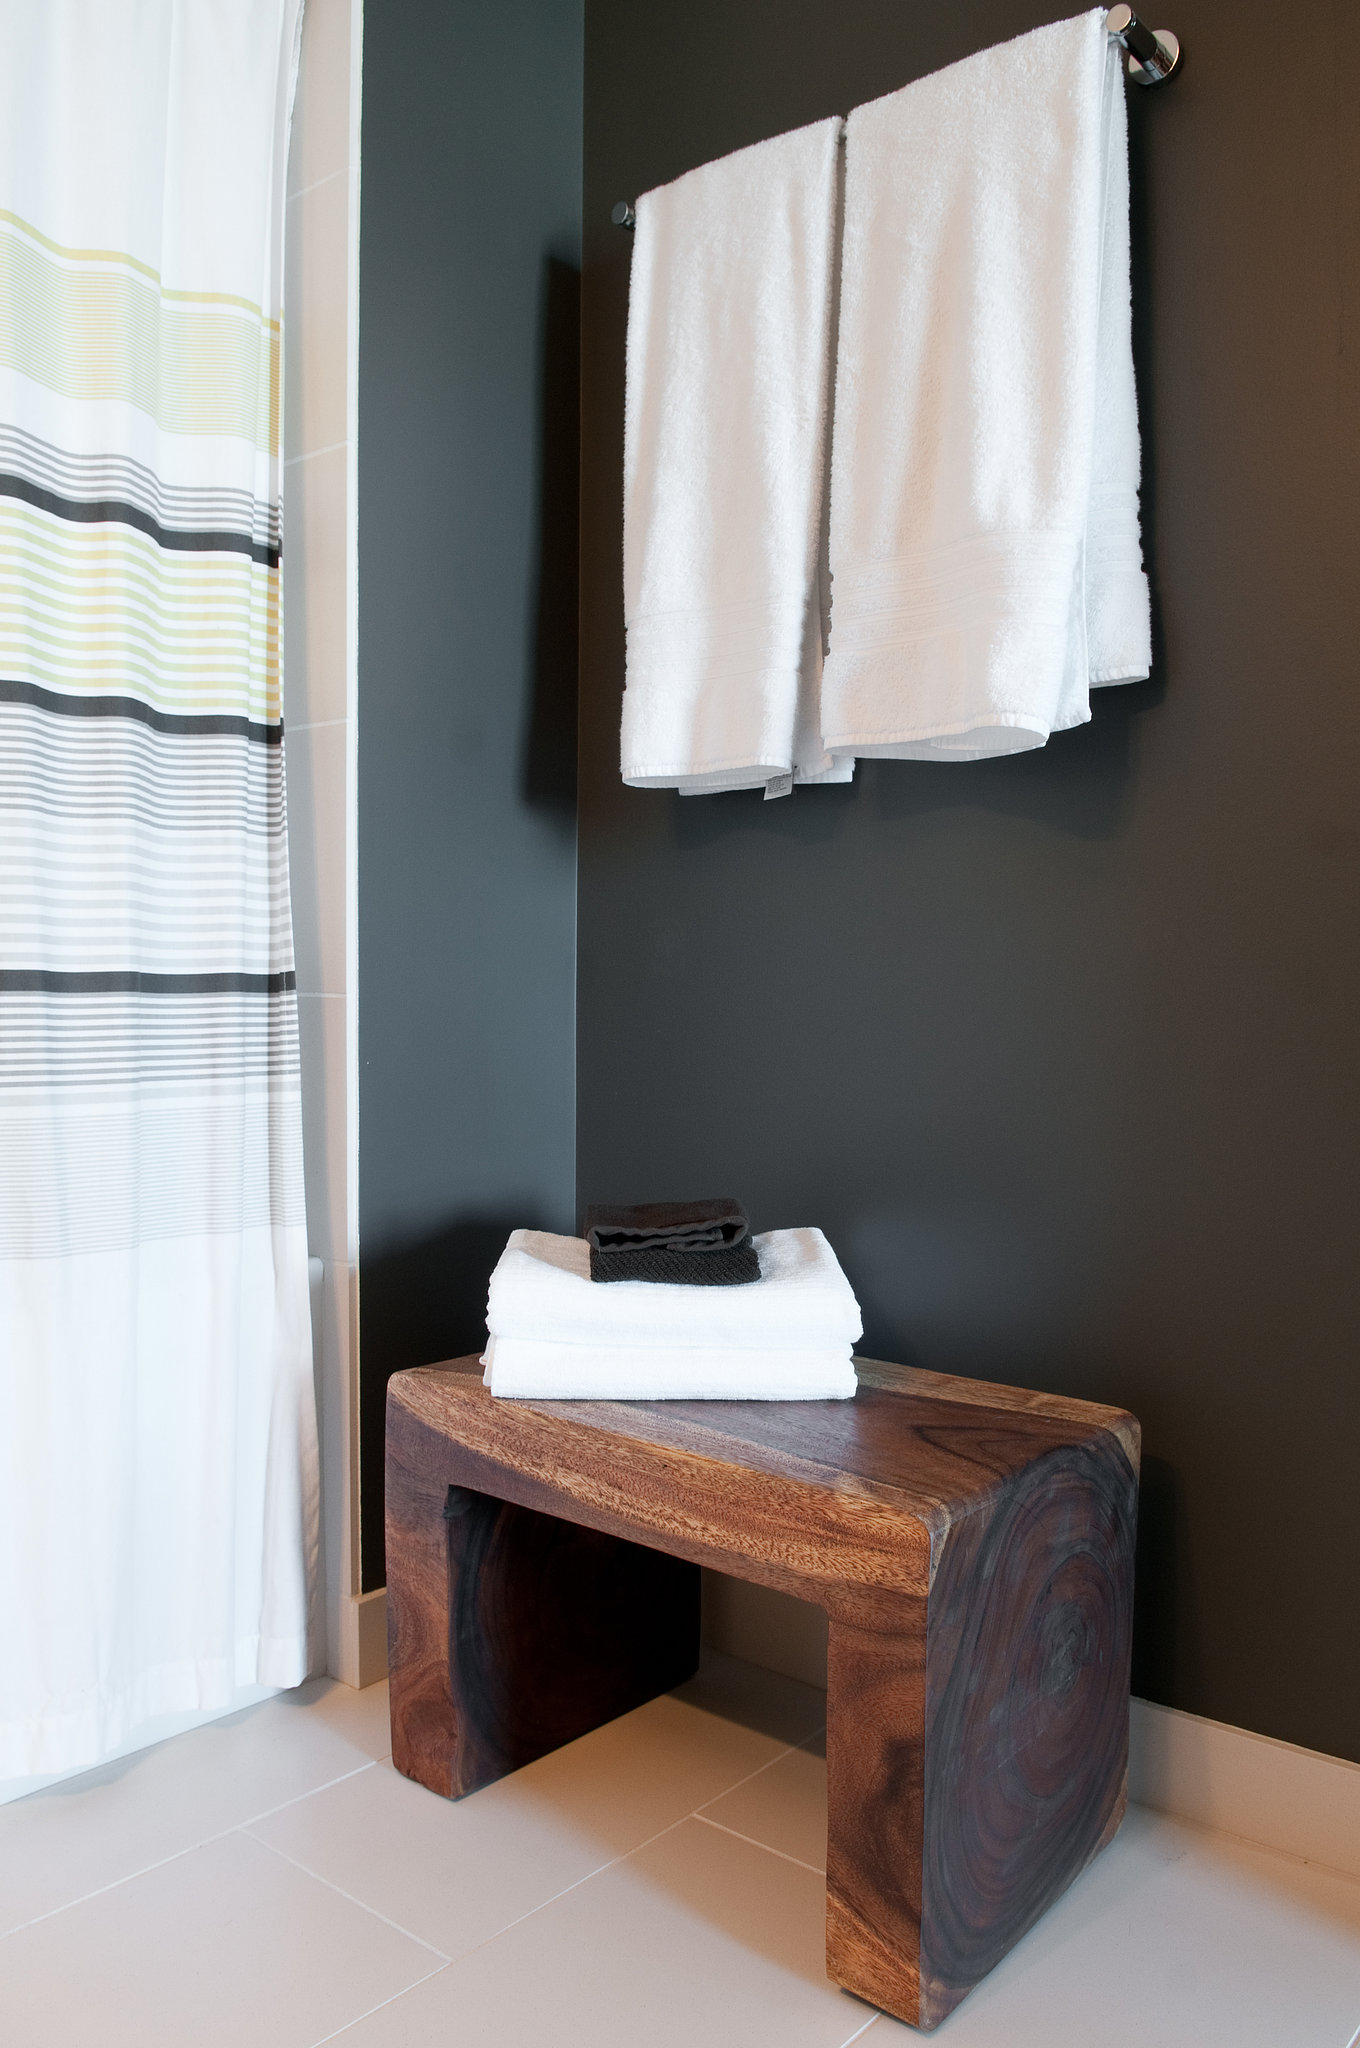 Small wooden stool for bathroom